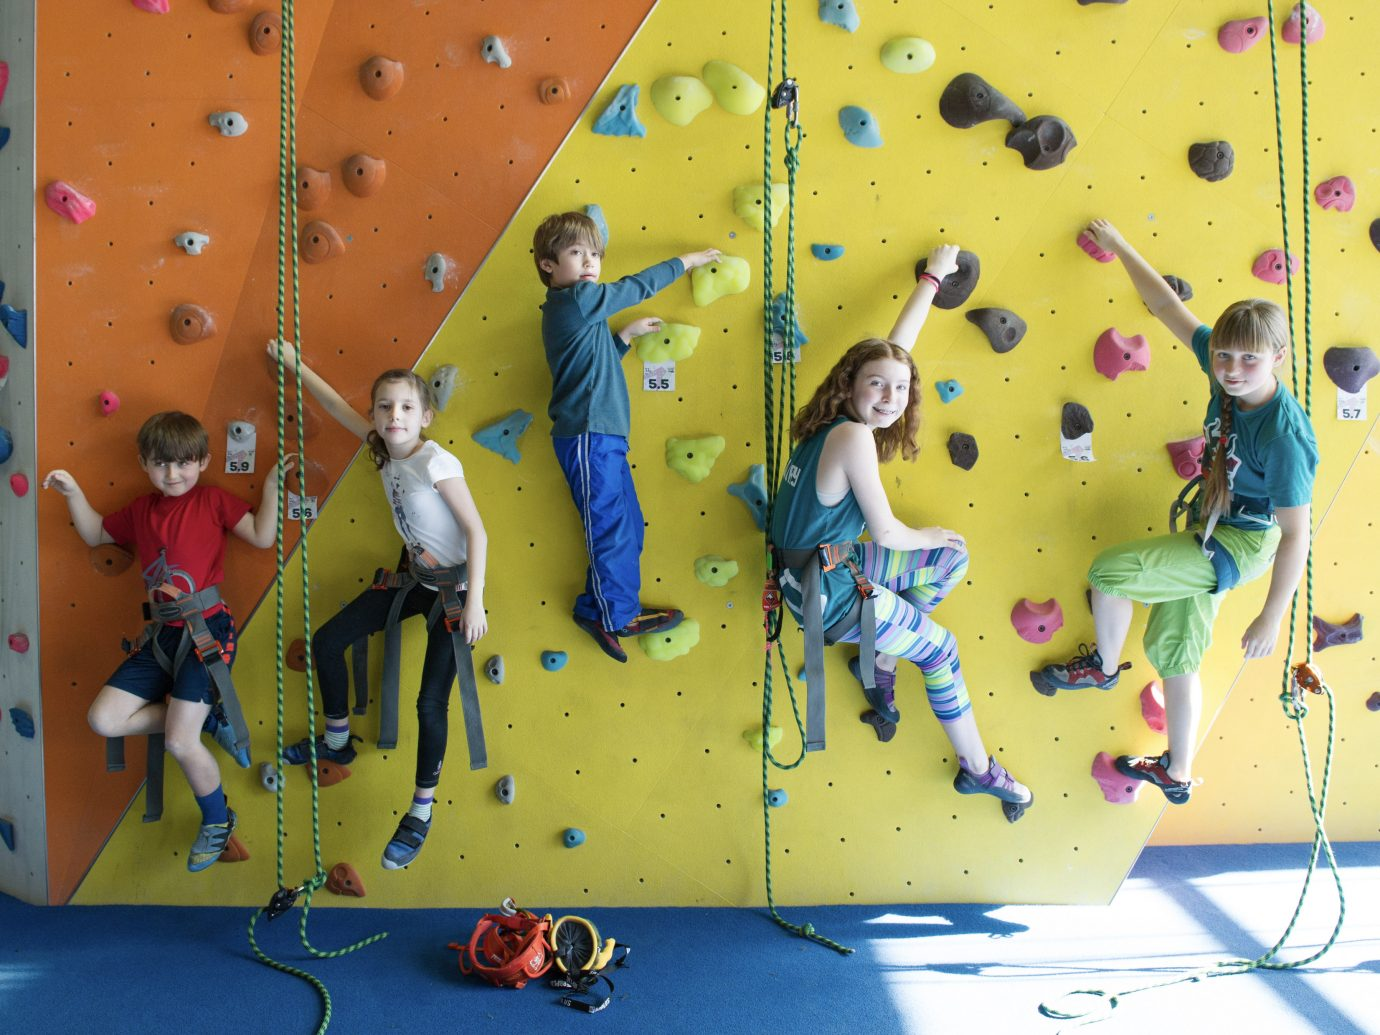 kids hanging on rock climbing wall posing for photo